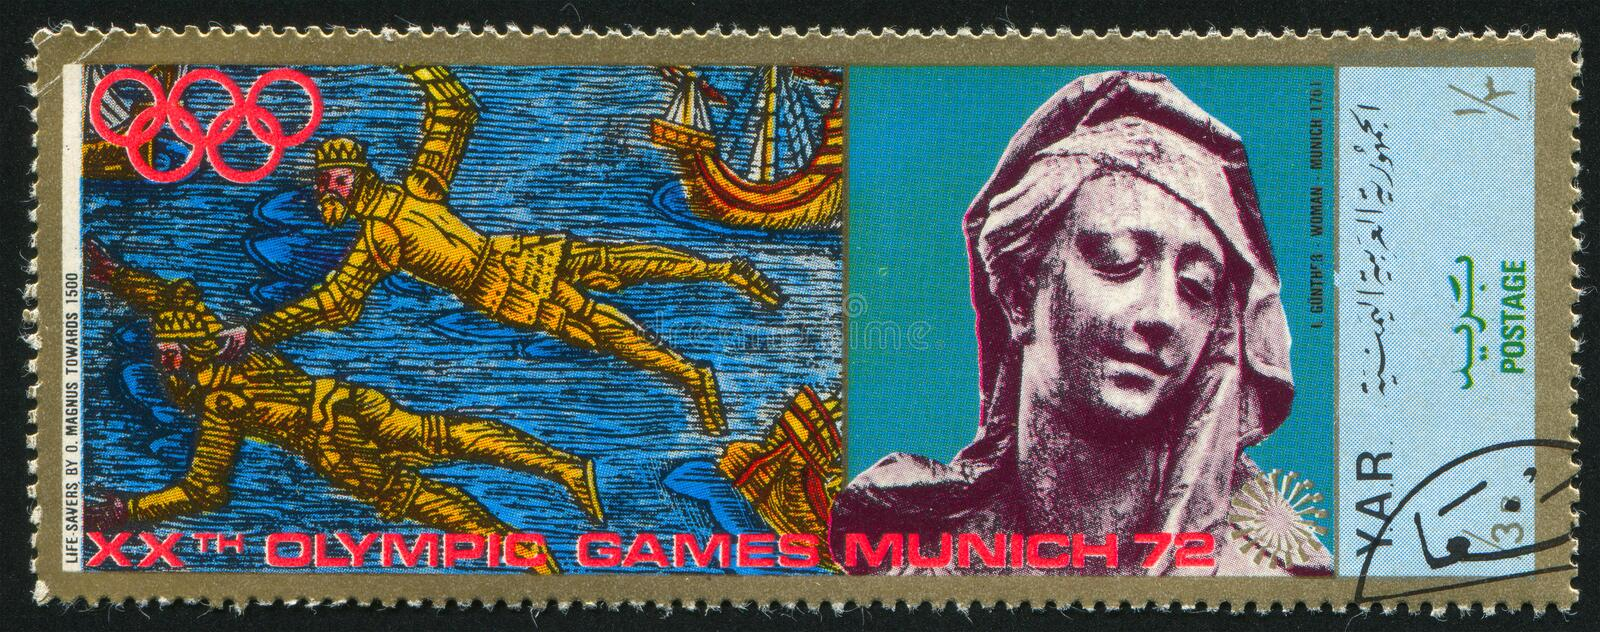 Life savers by Magnus and a Statue. YEMEN - CIRCA 1972: stamp printed by Yemen, shows Life savers by Magnus and a Statue, circa 1972 royalty free stock photos